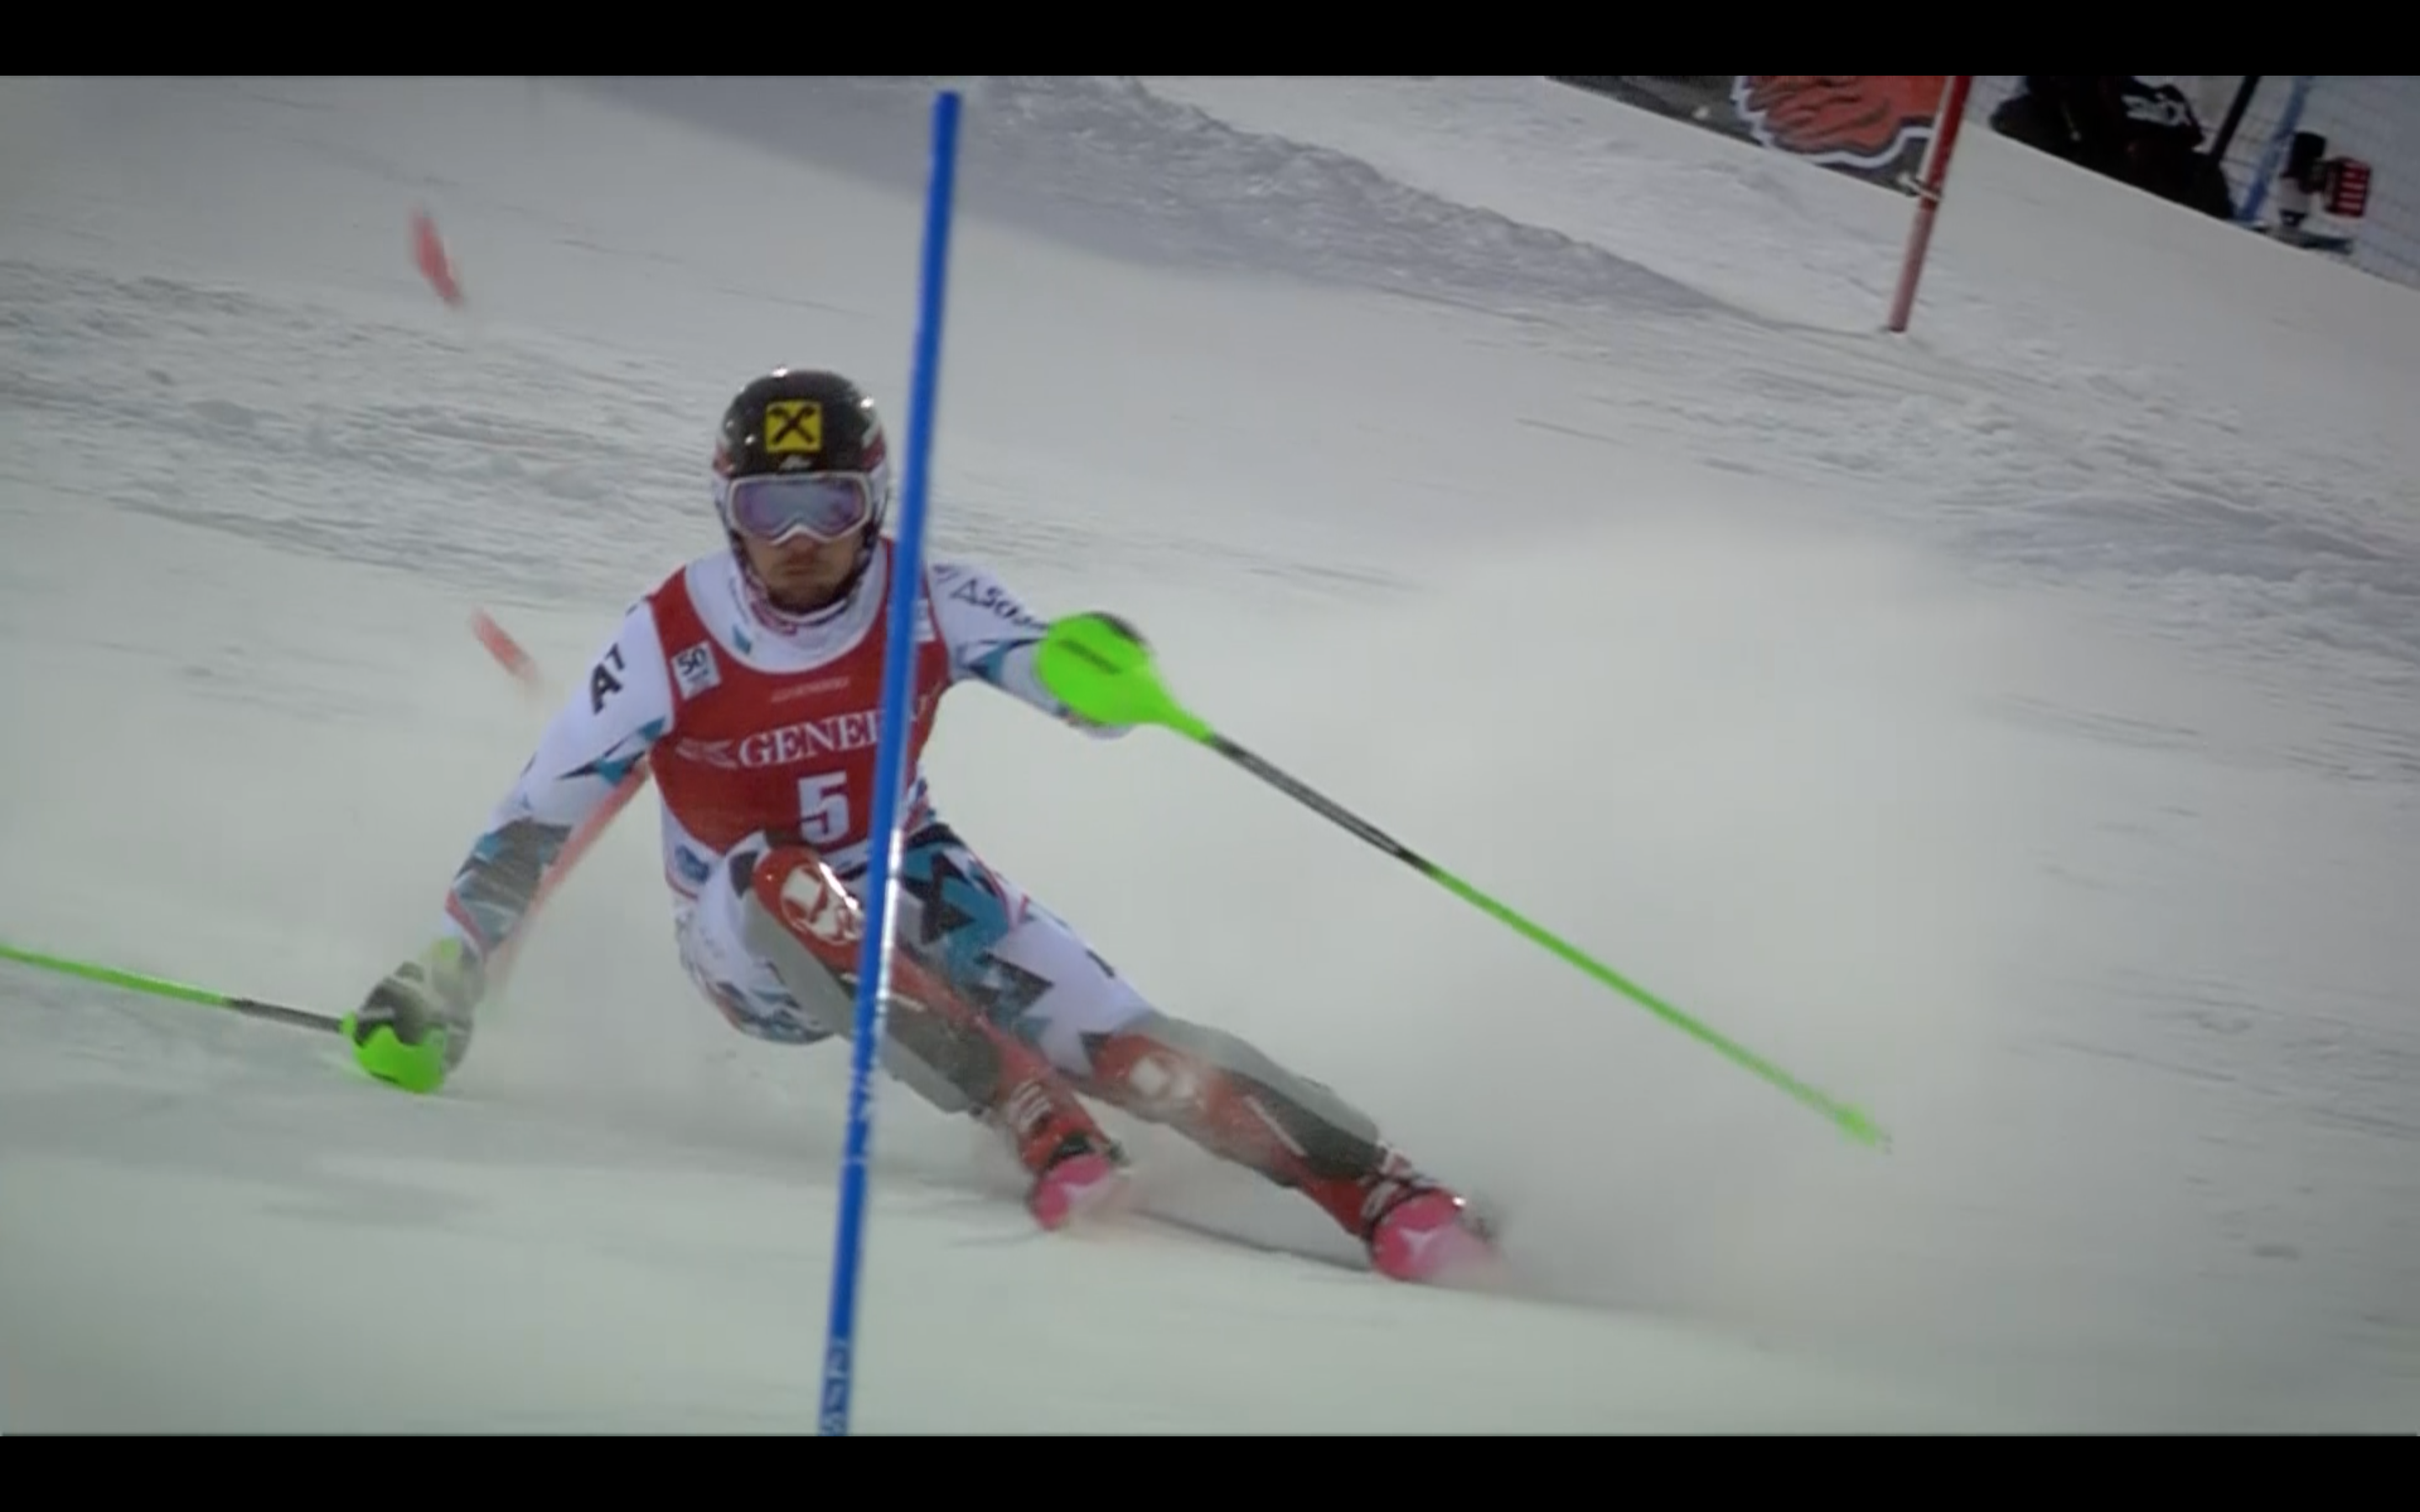 13 Nov, Levi (FIN) Men's Slalom - Run 2 Marcel Hirscher